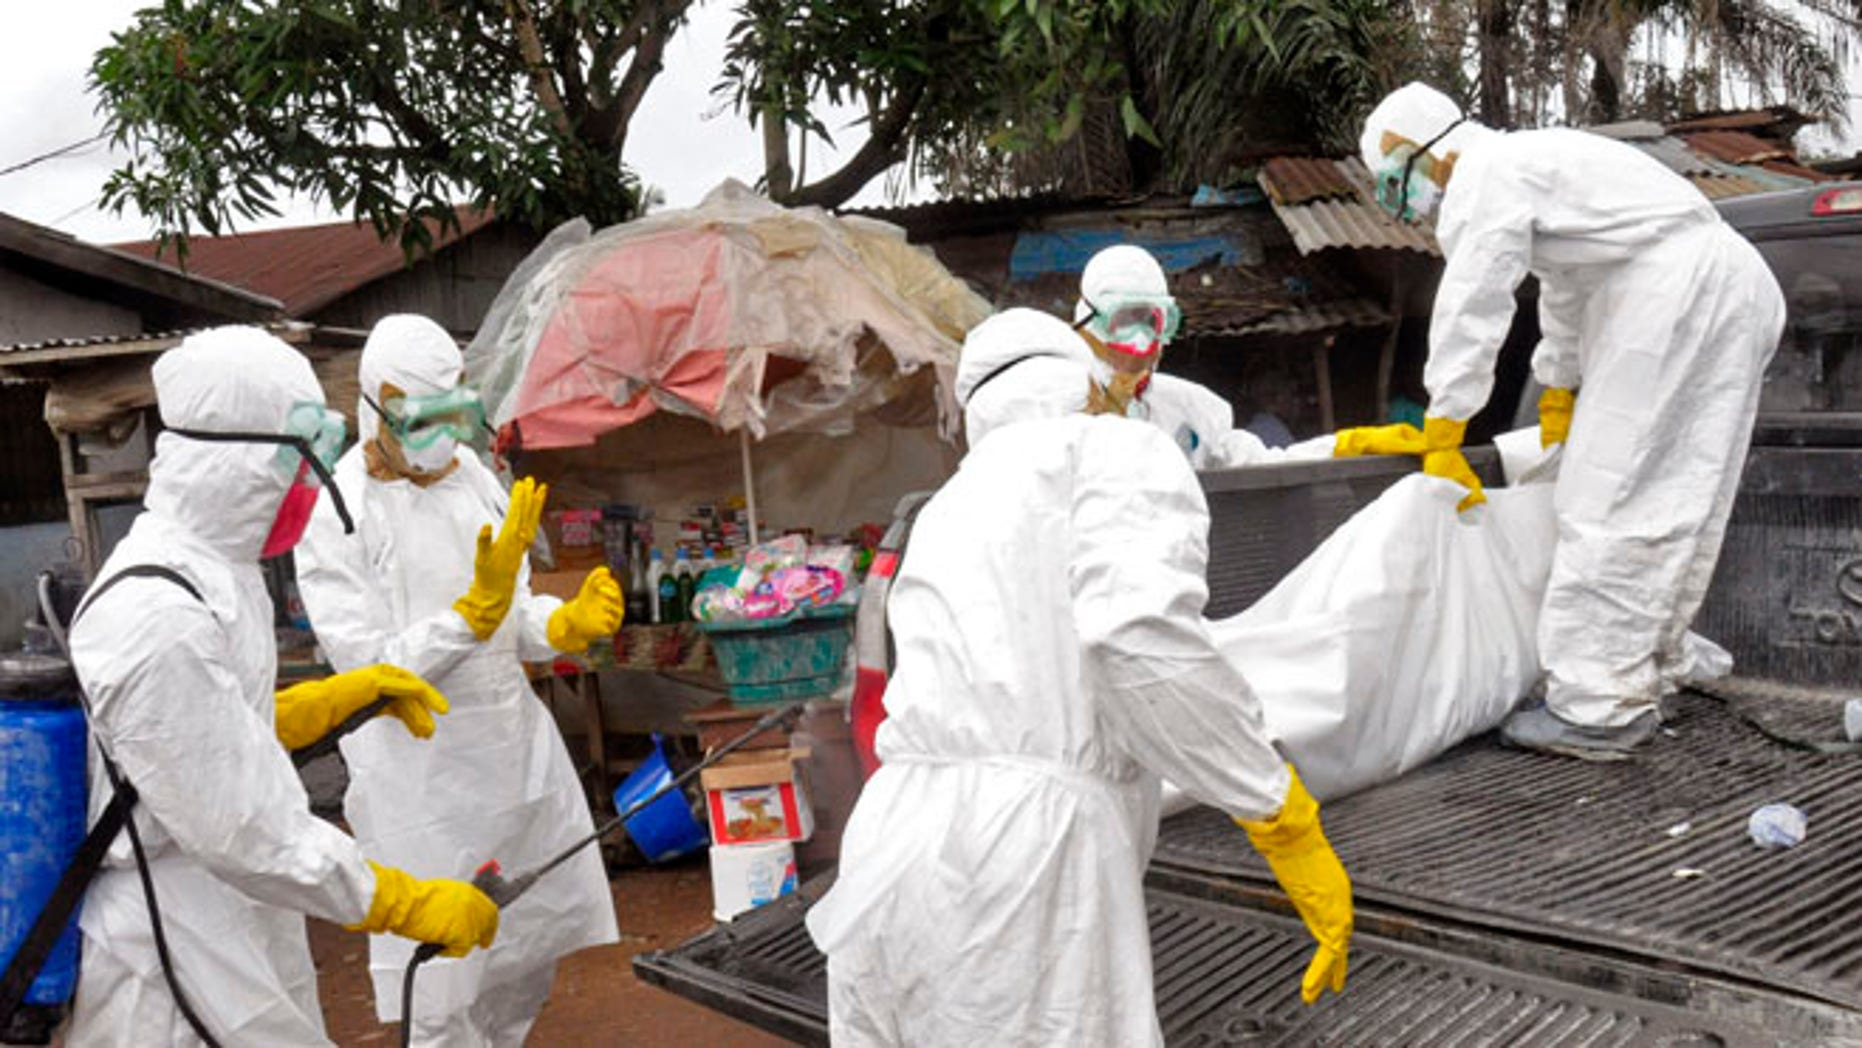 Sept. 10, 2014: Health workers load the body of a woman they suspect died from the Ebola virus onto a truck in Monrovia, Liberia.